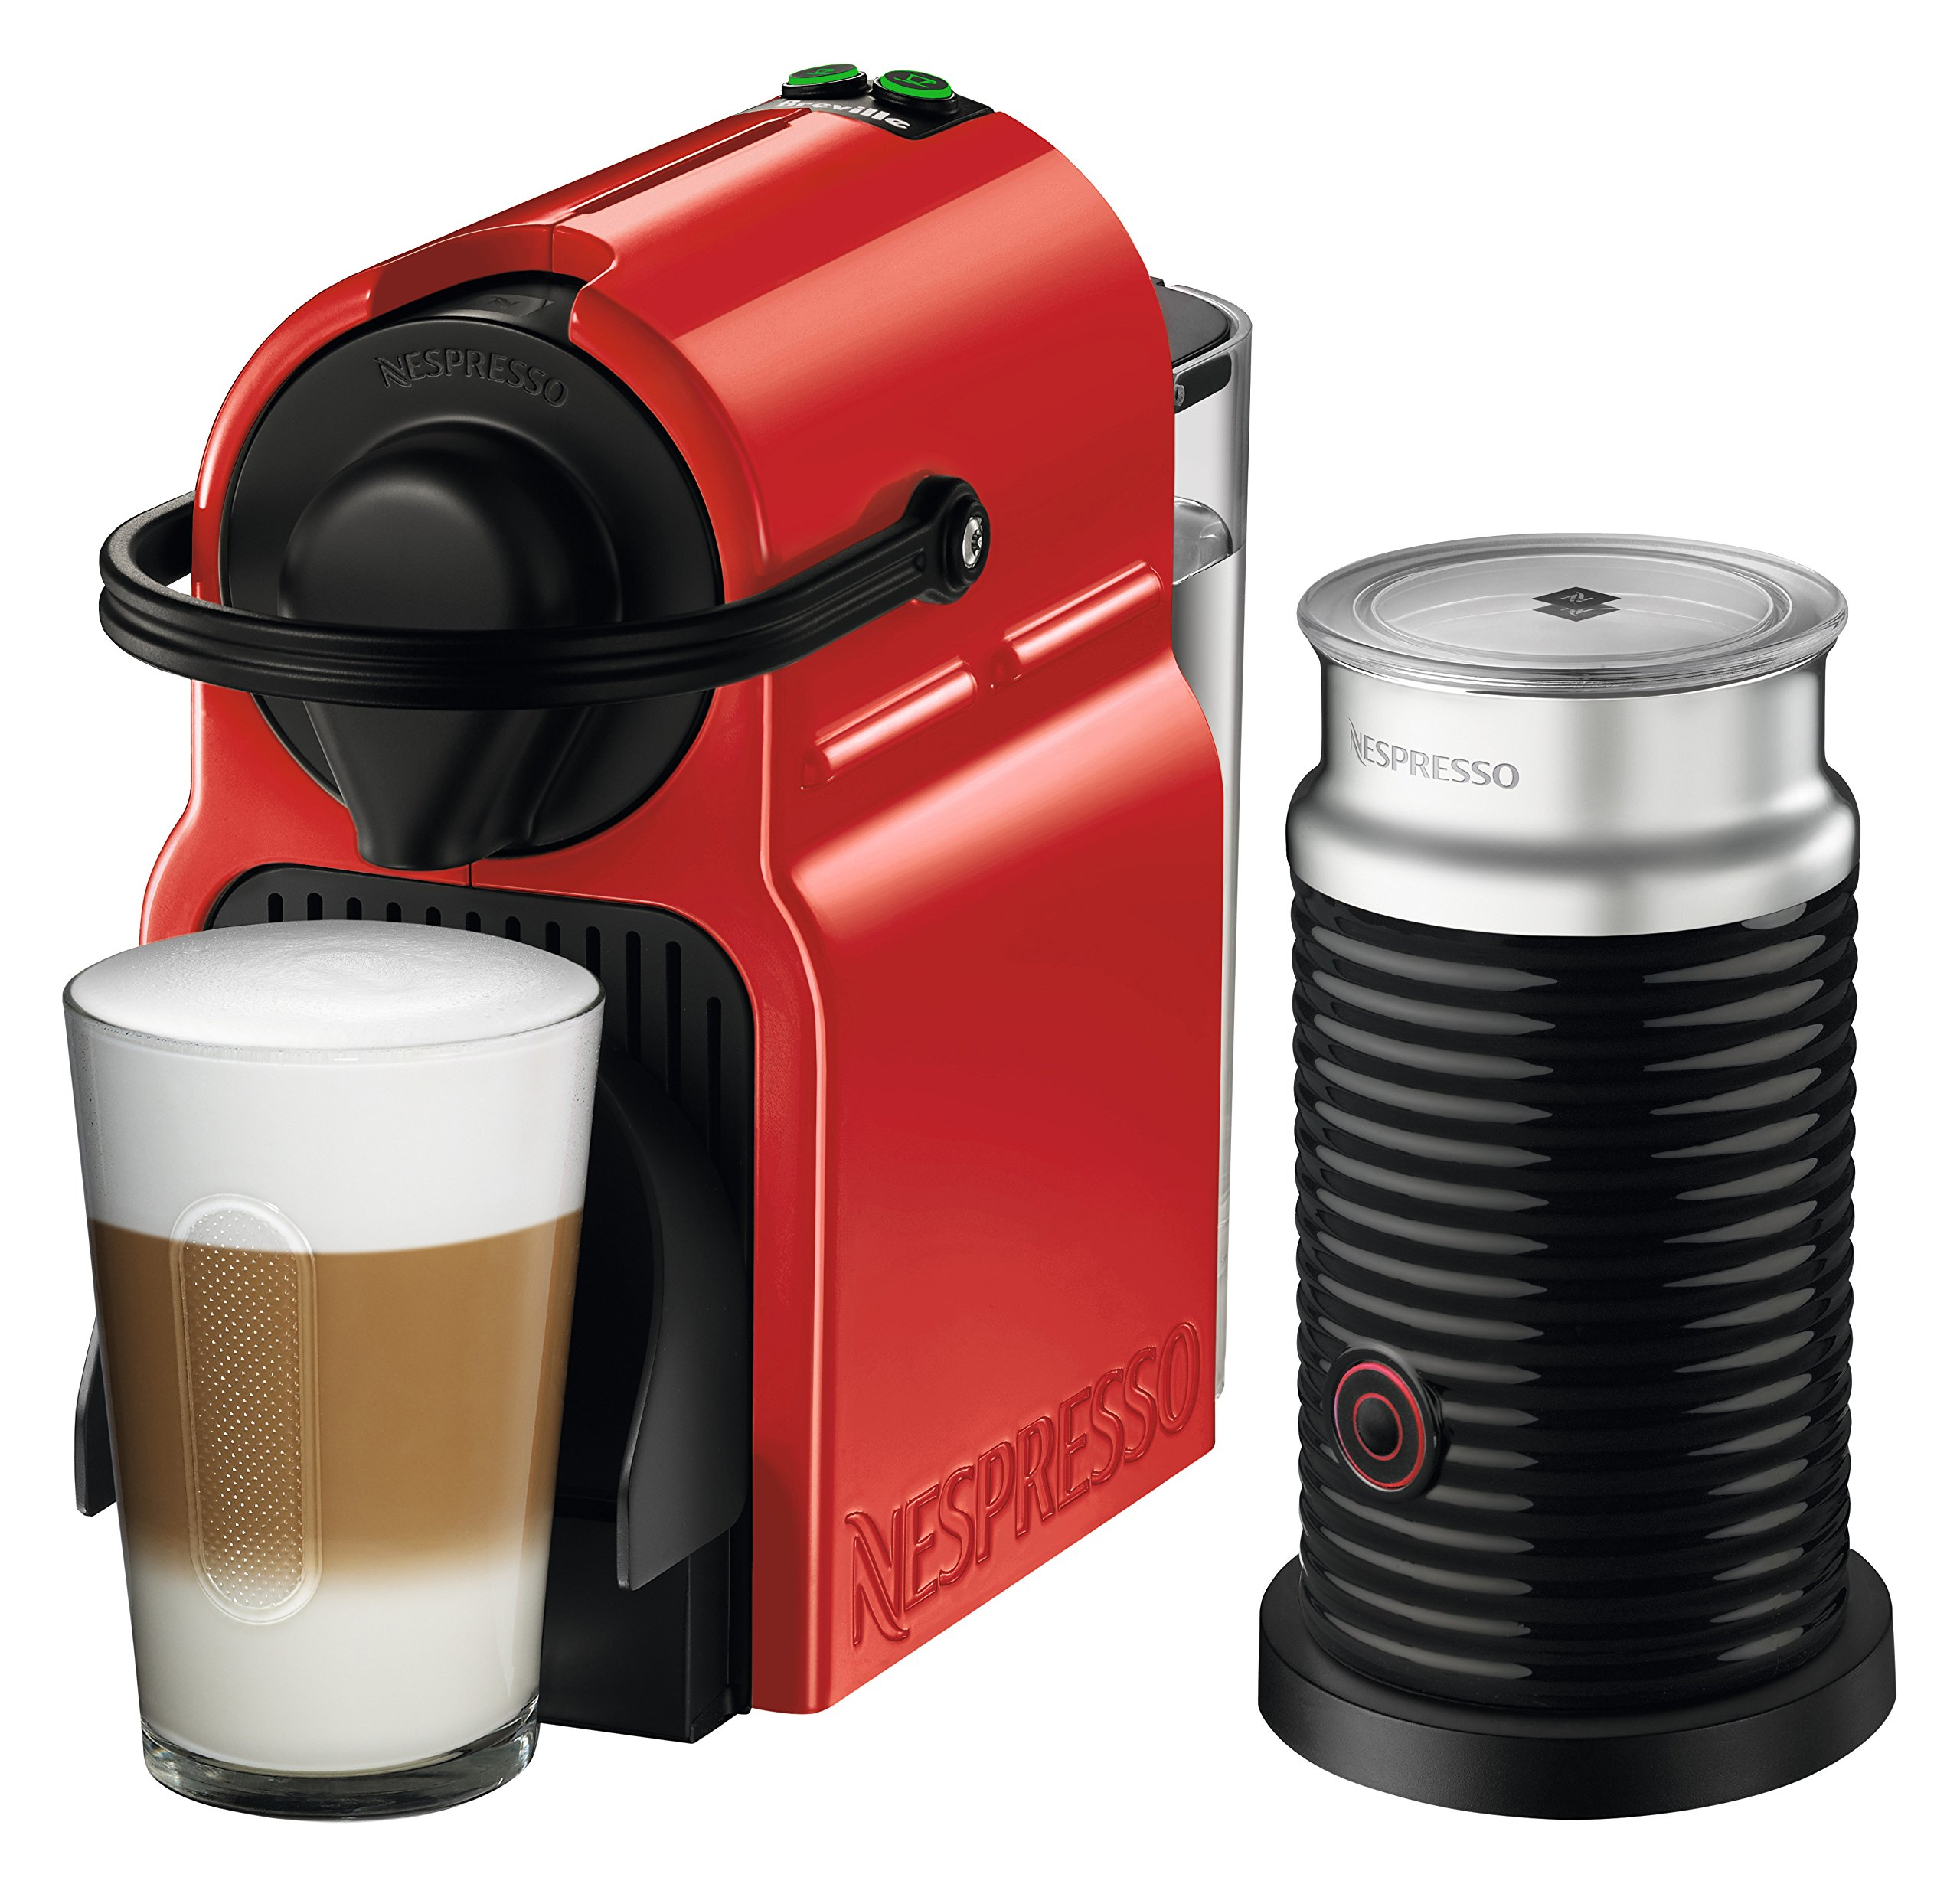 Nespresso Inissia Espresso Machine by Breville with Aeroccino, Red by Breville